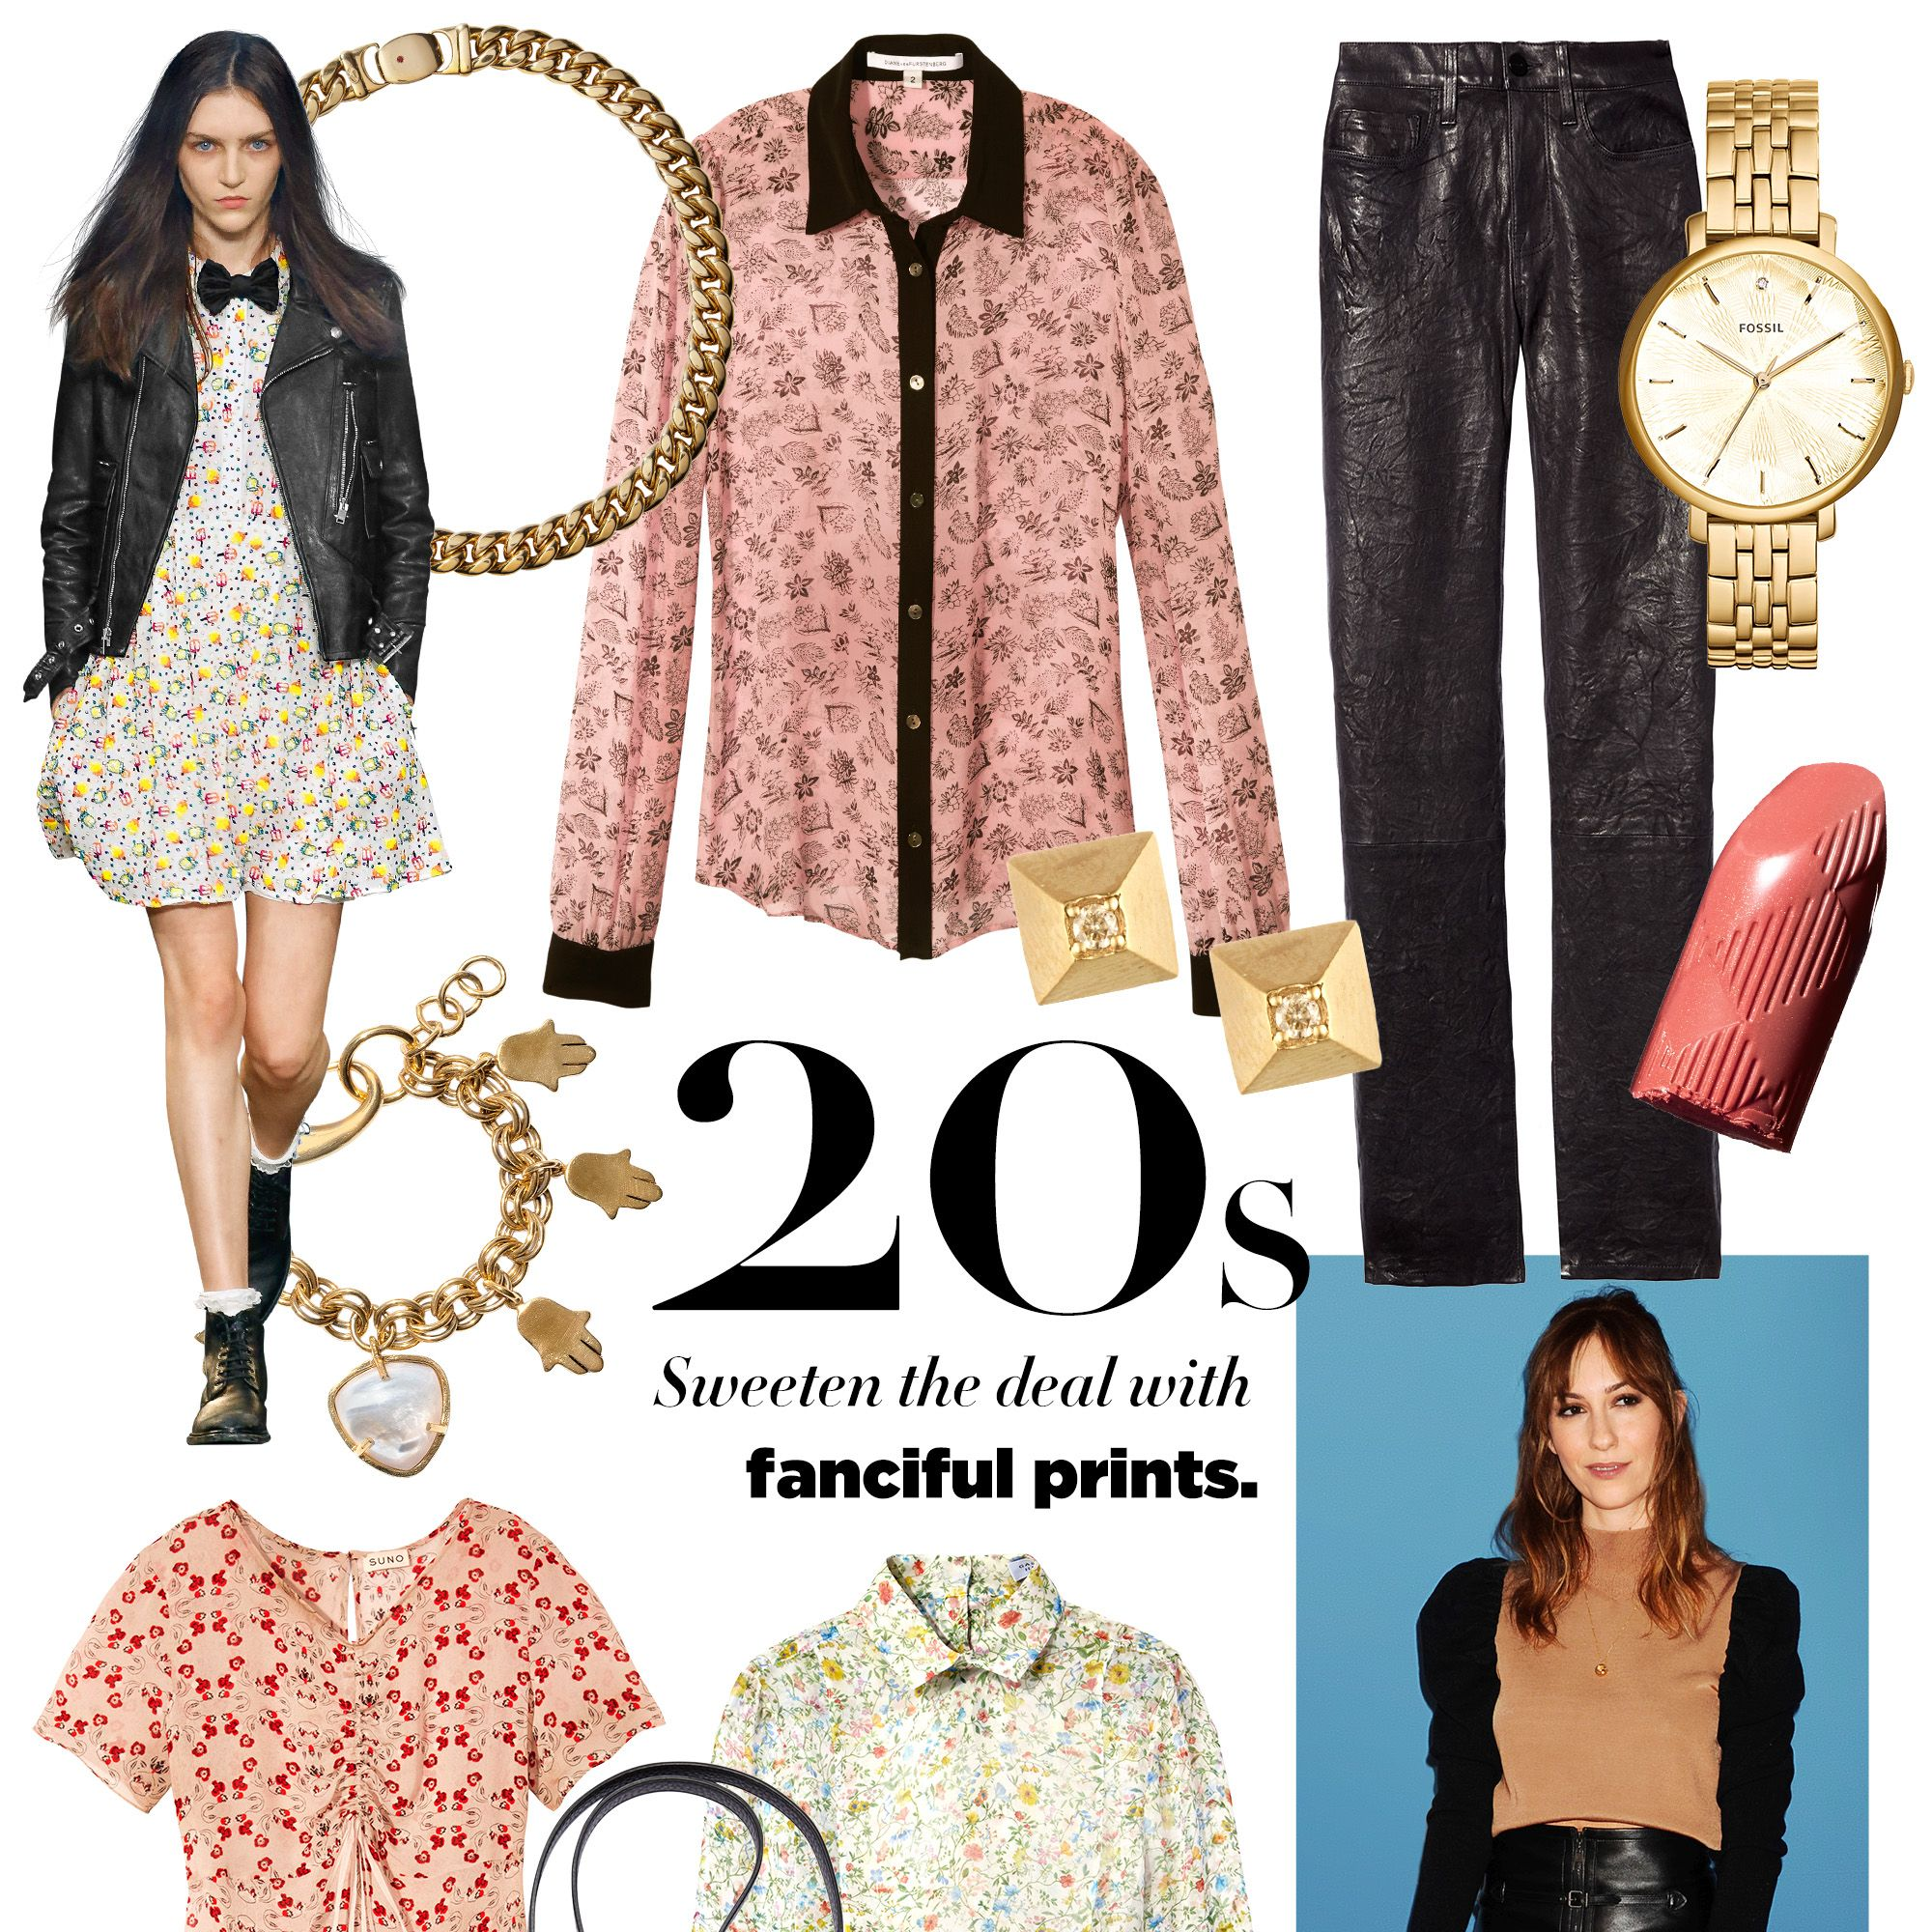 """<p><strong>Stylists's Tip: </strong>Toughen up flowered patterns with black leather.</p><p><strong>Roberto Coin </strong>necklace, $12,300, <a href=""""https://shop.harpersbazaar.com/jewelry/"""" target=""""_blank"""">shopBAZAAR.com</a><img src=""""http://assets.hdmtools.com/images/HBZ/Shop.svg"""" class=""""icon shop"""">&#x3B; <strong>Diane von Furstenberg </strong><span class=""""redactor-invisible-space"""" style=""""line-height: 1.6em&#x3B; background-color: initial&#x3B;"""">blouse, $298, <a href=""""http://www.dvf.com/dvf-mariah-chiffon-blouse/S937101G15W.html?dwvar_S937101G15W_color=SMFPB&dwvar_S937101G15W_size=2#cgid=blouses"""" target=""""_blank"""">dvf.com</a>&#x3B; <strong>Hirotaka </strong><span class=""""redactor-invisible-space"""">earrings, $350, <a href=""""http://www.hiro-taka.com/"""" target=""""_blank"""">hiro-taka.com</a>&#x3B; <strong></strong><strong>Frame Denim </strong>pants, $950, <a href=""""https://shop.harpersbazaar.com/designers/frame/le-skinny-leather-pants"""" target=""""_blank"""">shopBAZAAR.com</a><img src=""""http://assets.hdmtools.com/images/HBZ/Shop.svg"""" class=""""icon shop"""">&#x3B; <strong>Fossil </strong><span class=""""redactor-invisible-space"""">watch, $205, <a href=""""https://www.fossil.com/us/en/watches/women-watches/view-all.html"""" target=""""_blank"""">fossil.com</a>&#x3B; <strong>Burberry </strong><span class=""""redactor-invisible-space"""">Kisses lipstick in Peach Delight, $33, <a href=""""https://us.burberry.com/burberry-kisses-peach-delight-no57-p39696711"""" target=""""_blank"""">us.burberry.com</a>&#x3B; <strong>Lizzie Fortunato </strong><span class=""""redactor-invisible-space"""">charm bracelet, $295, <a href=""""https://shop.harpersbazaar.com/designers/l/lizzie-fortunato/tropics-charm-bracelet-6092.html"""" target=""""_blank"""">shopBAZAAR.com</a>&#x3B; <strong>Suno </strong><span class=""""redactor-invisible-space"""">dress, $595, Opening Ceremony, NYC, 646-237-6078&#x3B; <strong>Etienne Aigner </strong><span class=""""redactor-invisible-space"""">bag, $295, 212-334-1079&#x3B; <strong>Gabriela Hearst </strong><span class=""""redactor-invisible-space""""><span c"""